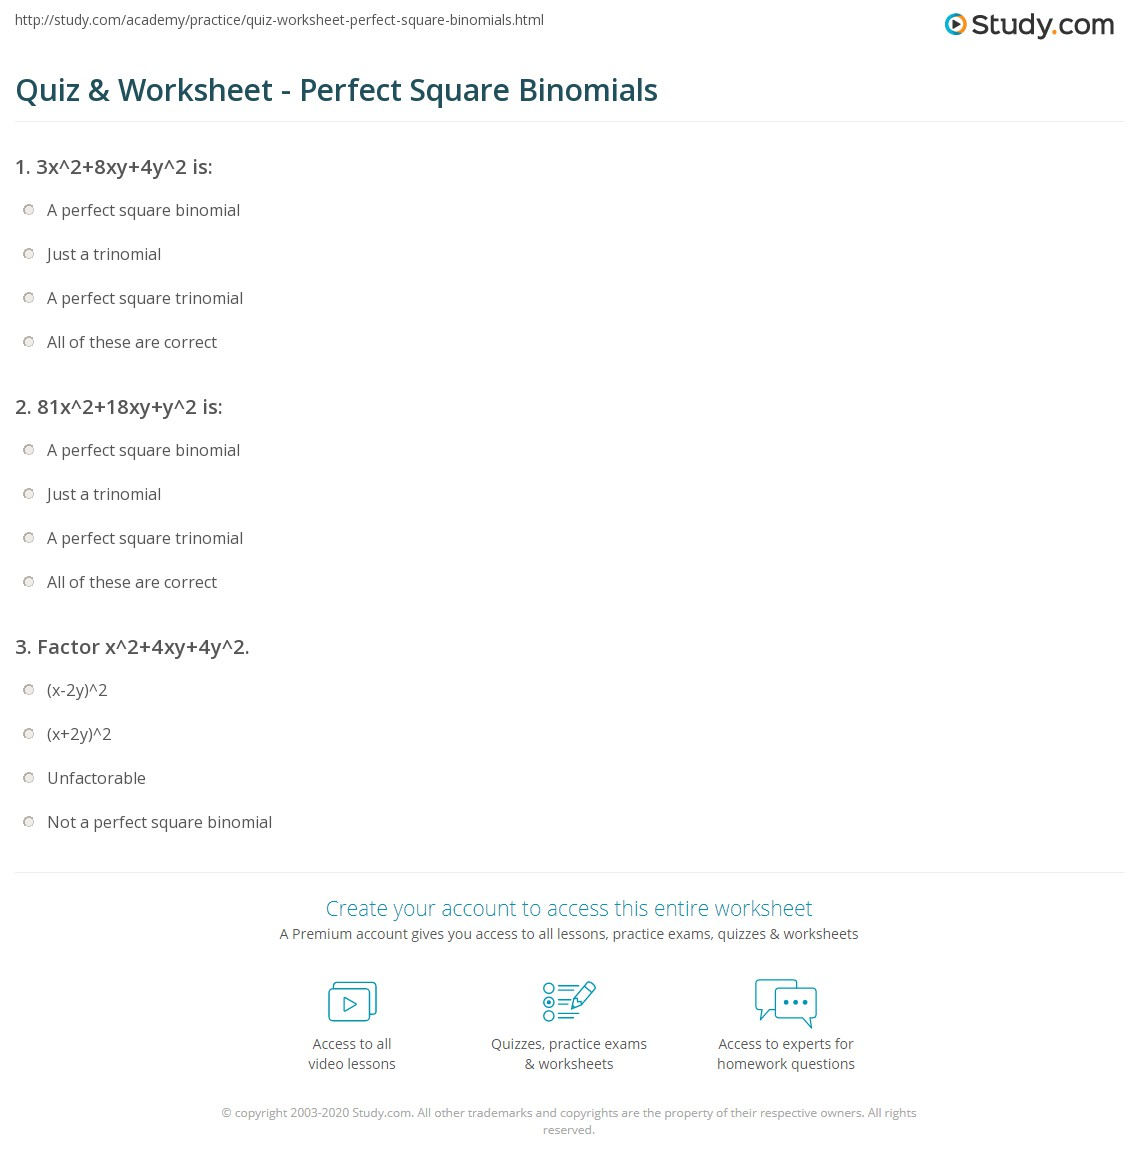 Print Perfect Square Binomial: Definition & Explanation Worksheet